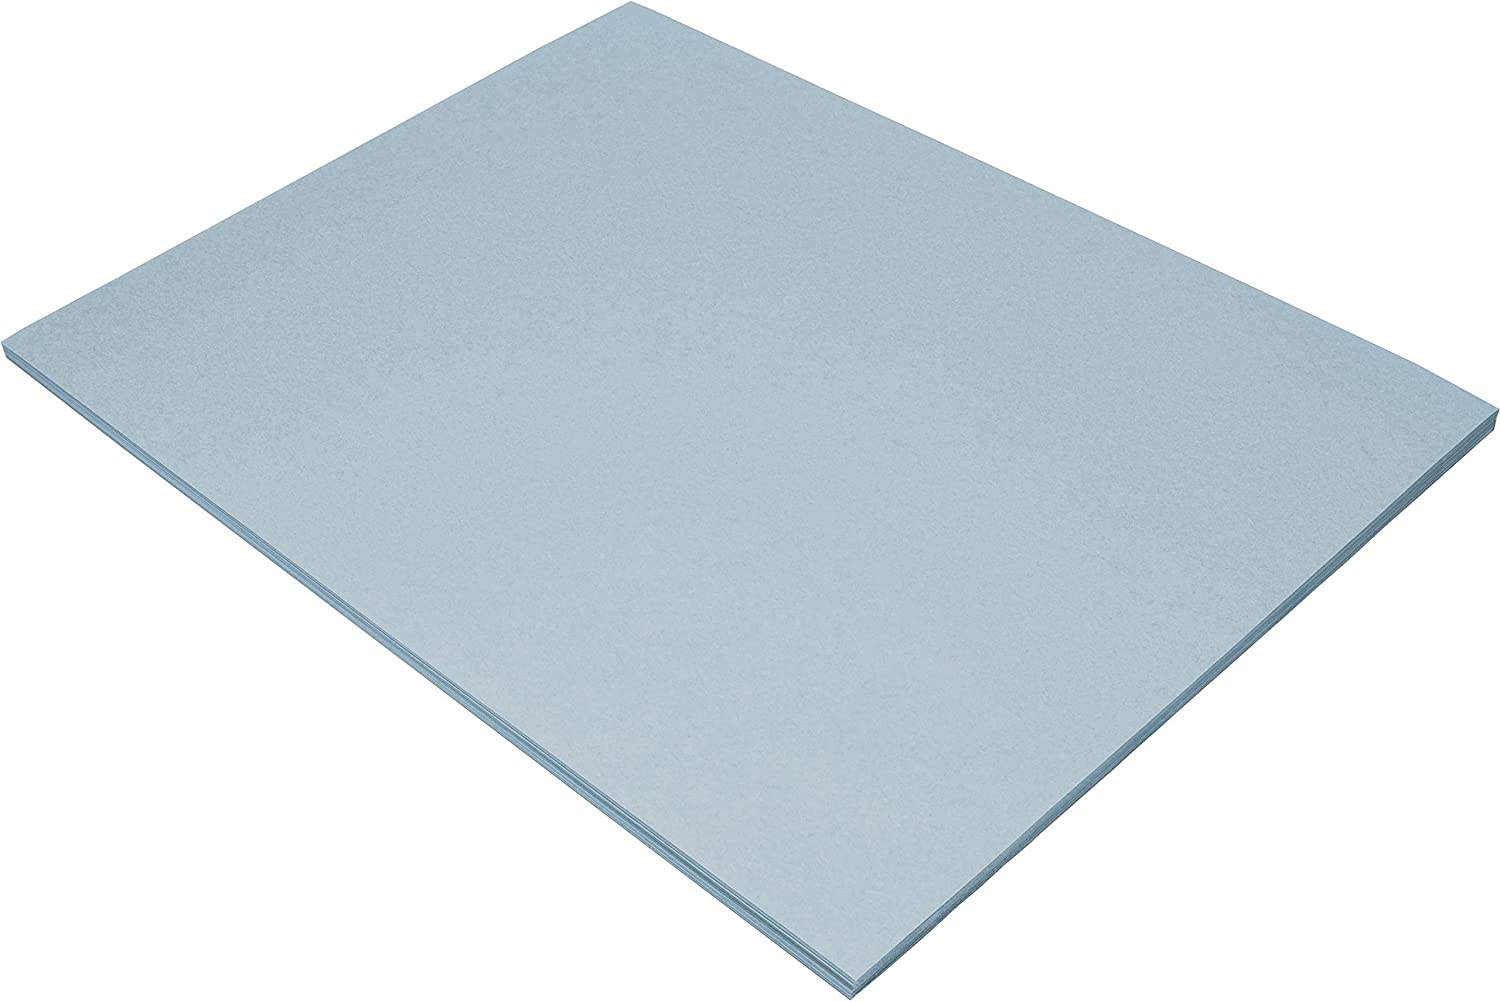 Riverside Construction Paper, 18 X24 , Light bluee, 50 Sheets